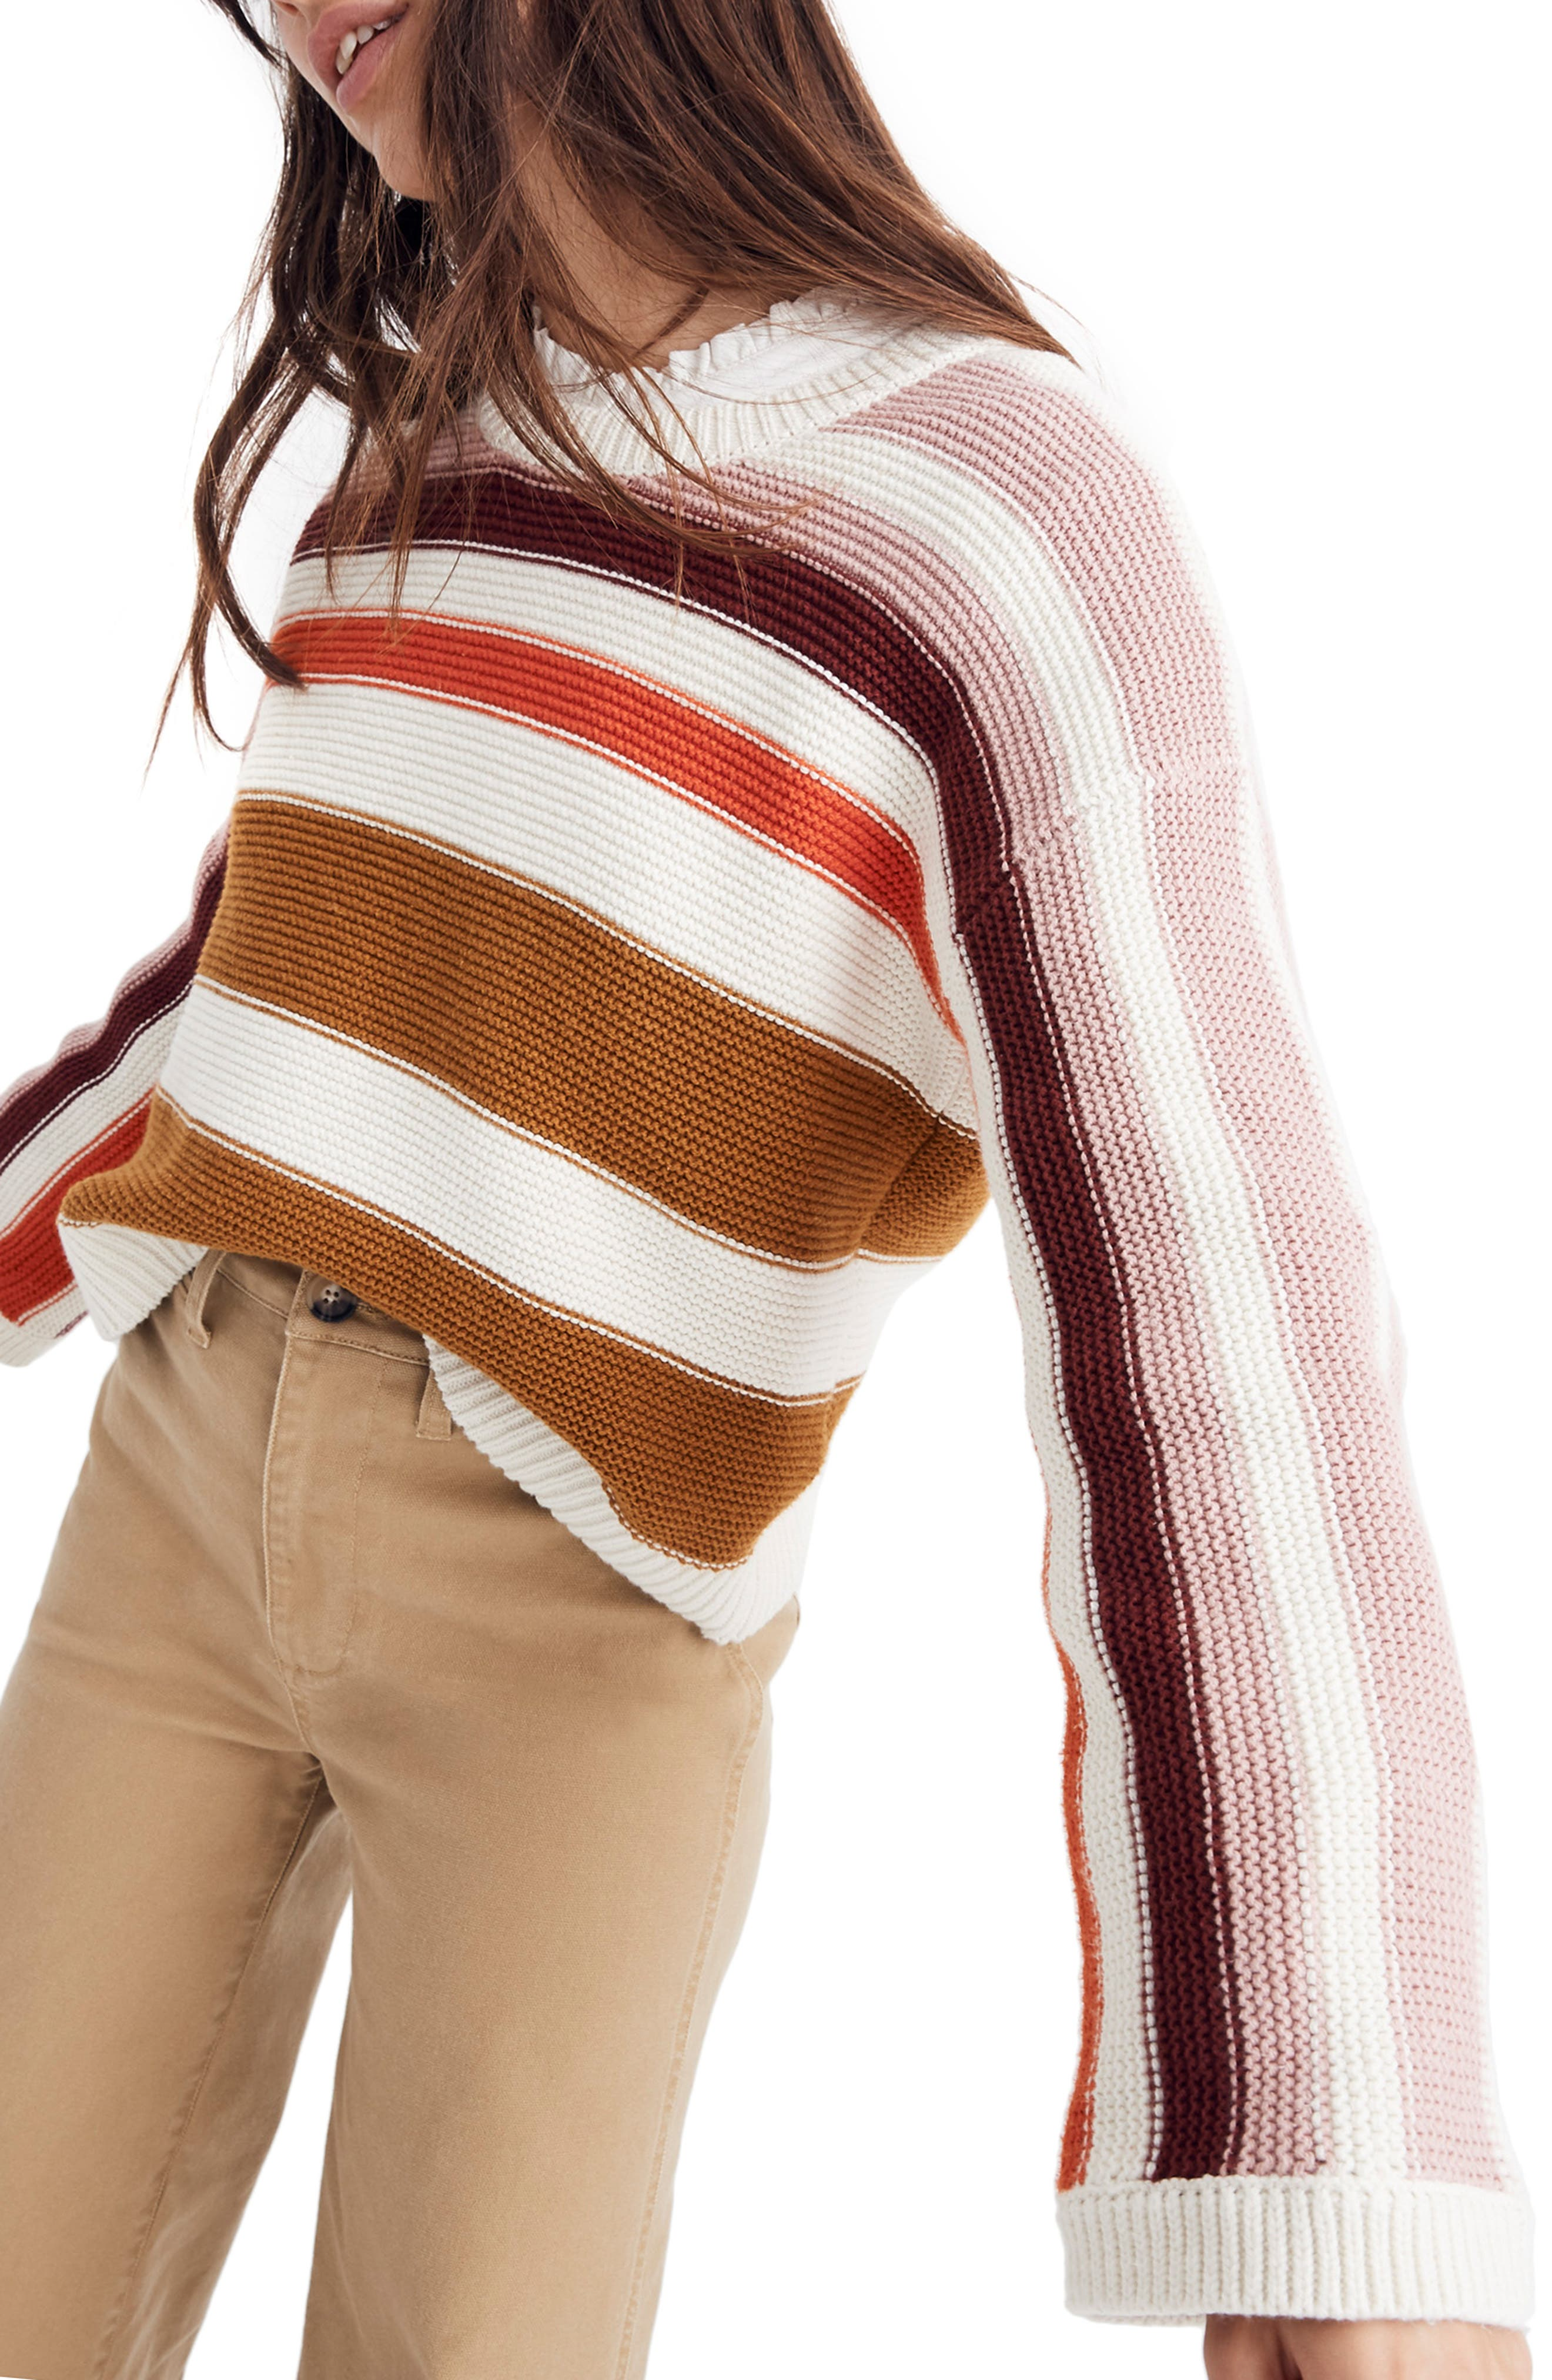 MADEWELL,                             Valleyscape Stripe Pullover Sweater,                             Alternate thumbnail 3, color,                             NATURAL